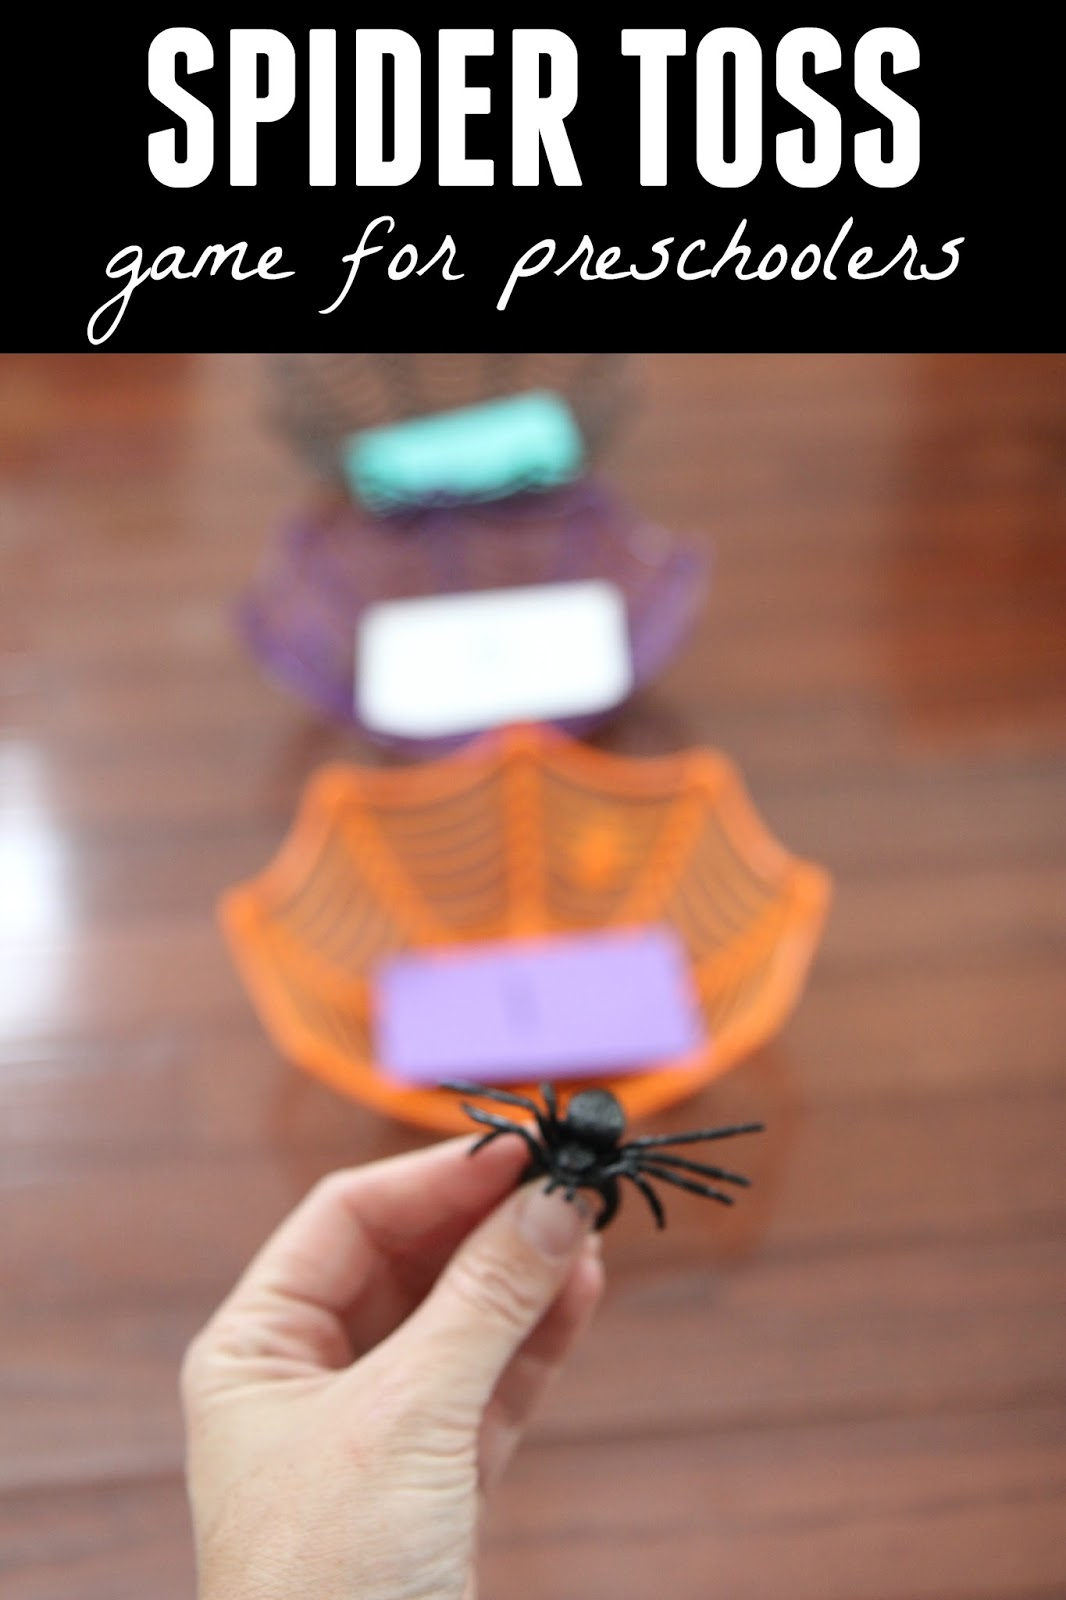 Games For 3 Year Olds: Toddler Approved!: Spider Toss Game For Preschoolers